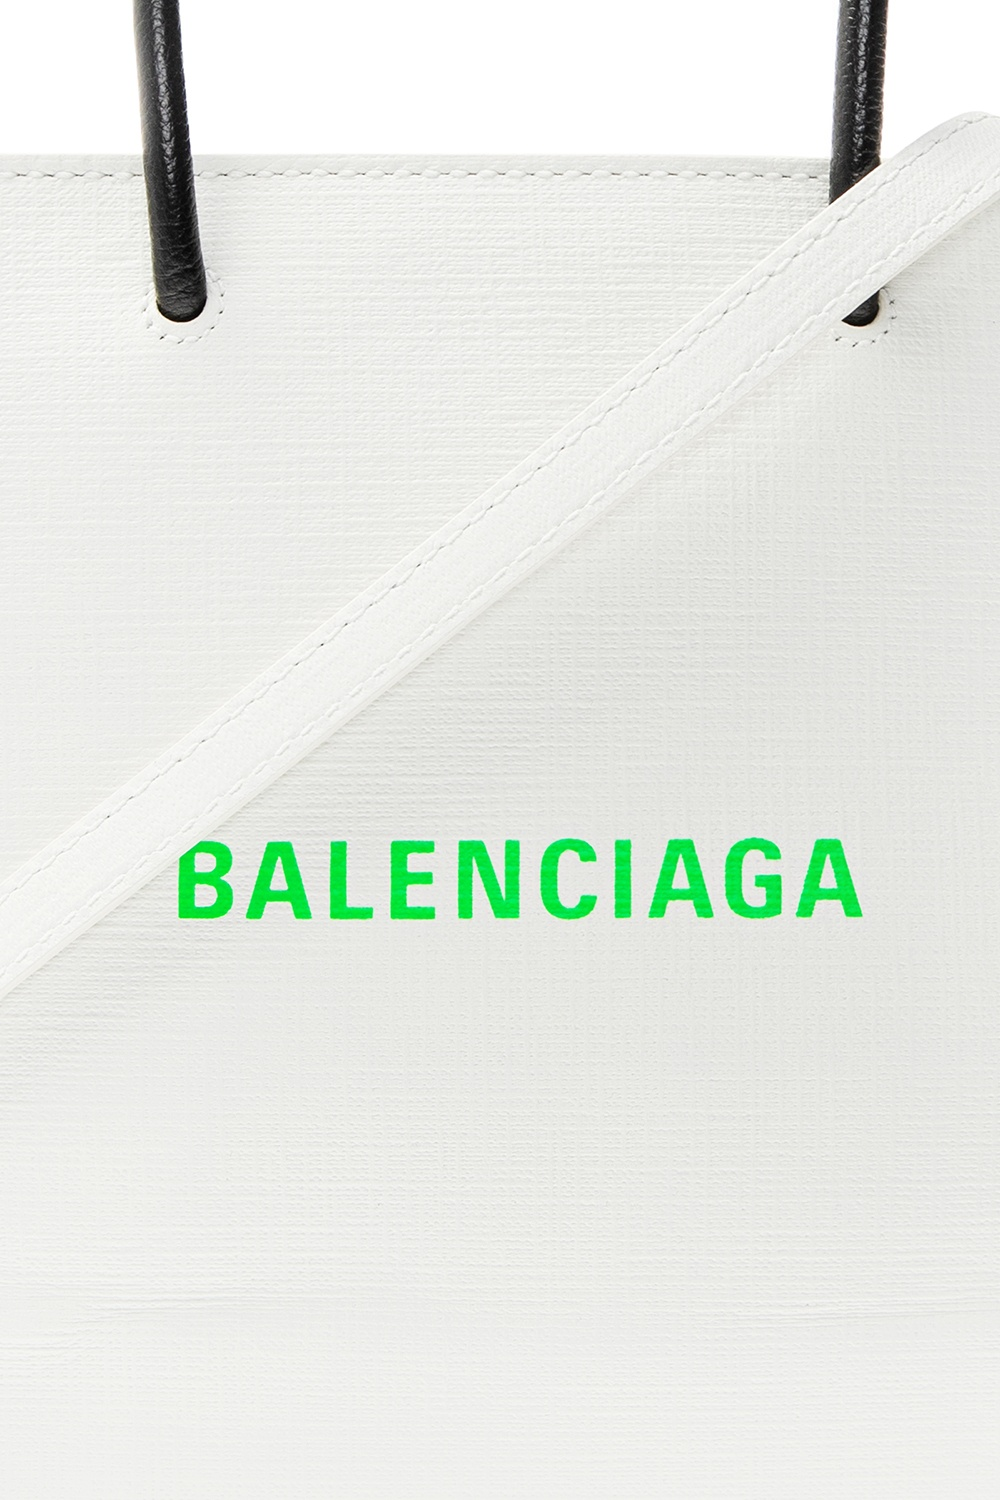 Balenciaga 'Shopping' tote bag